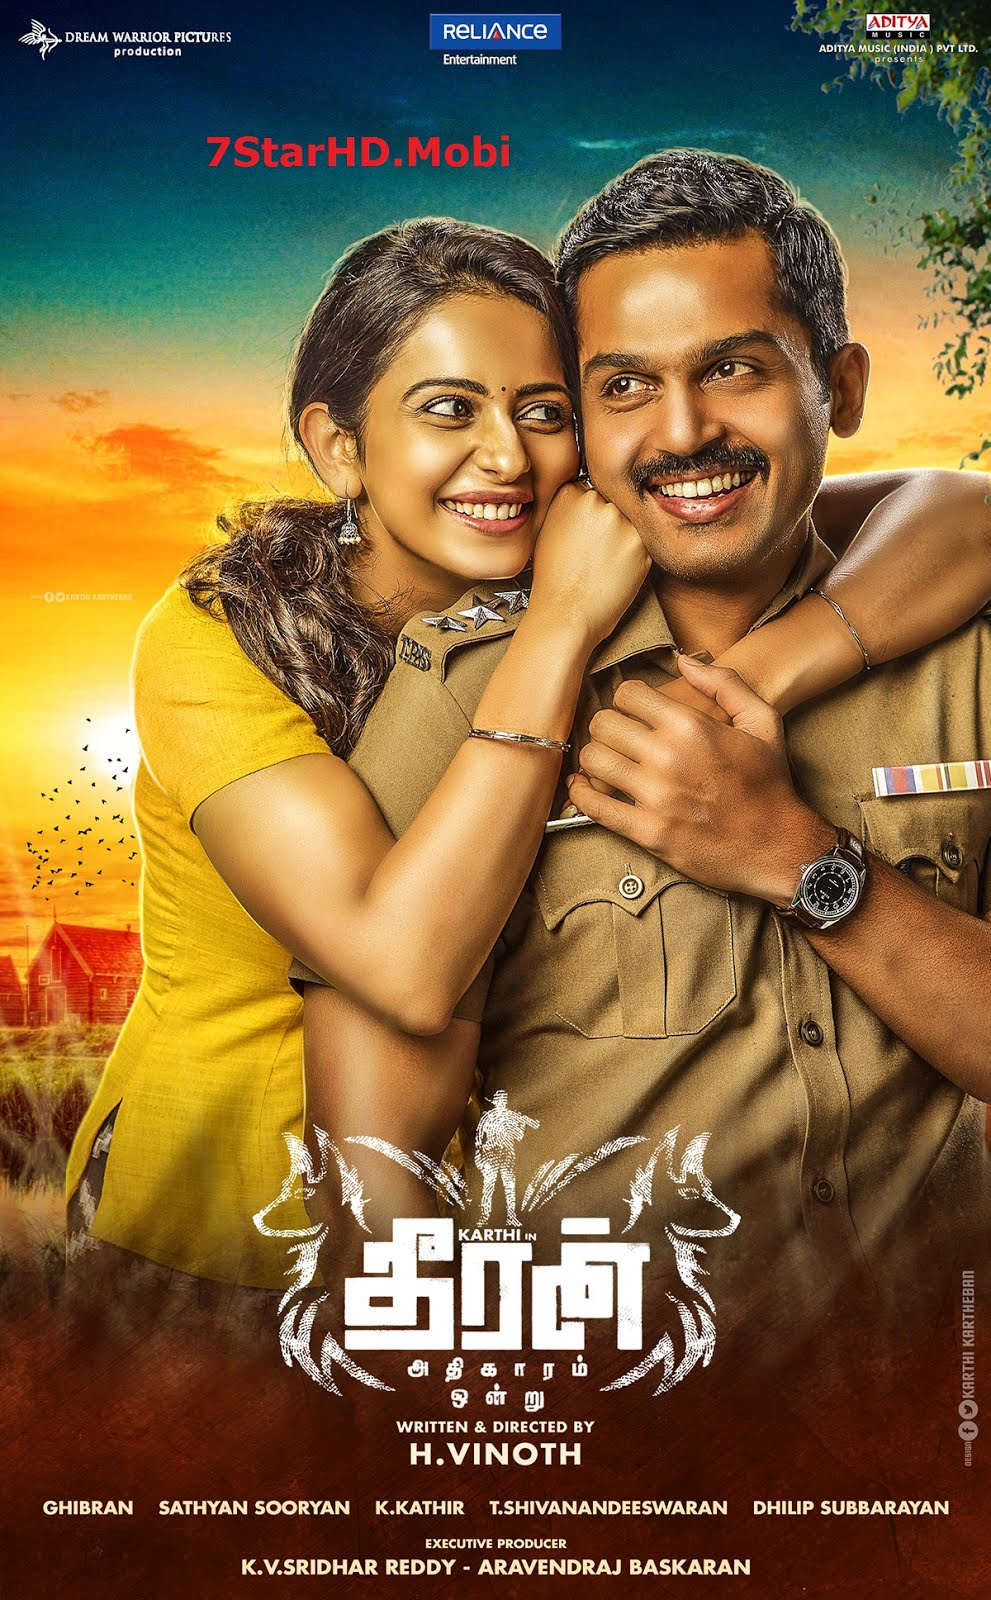 Theeran (Theeran Adhigaaram Ondru) 2018 Hindi Dubbed 1080p HDRip Download